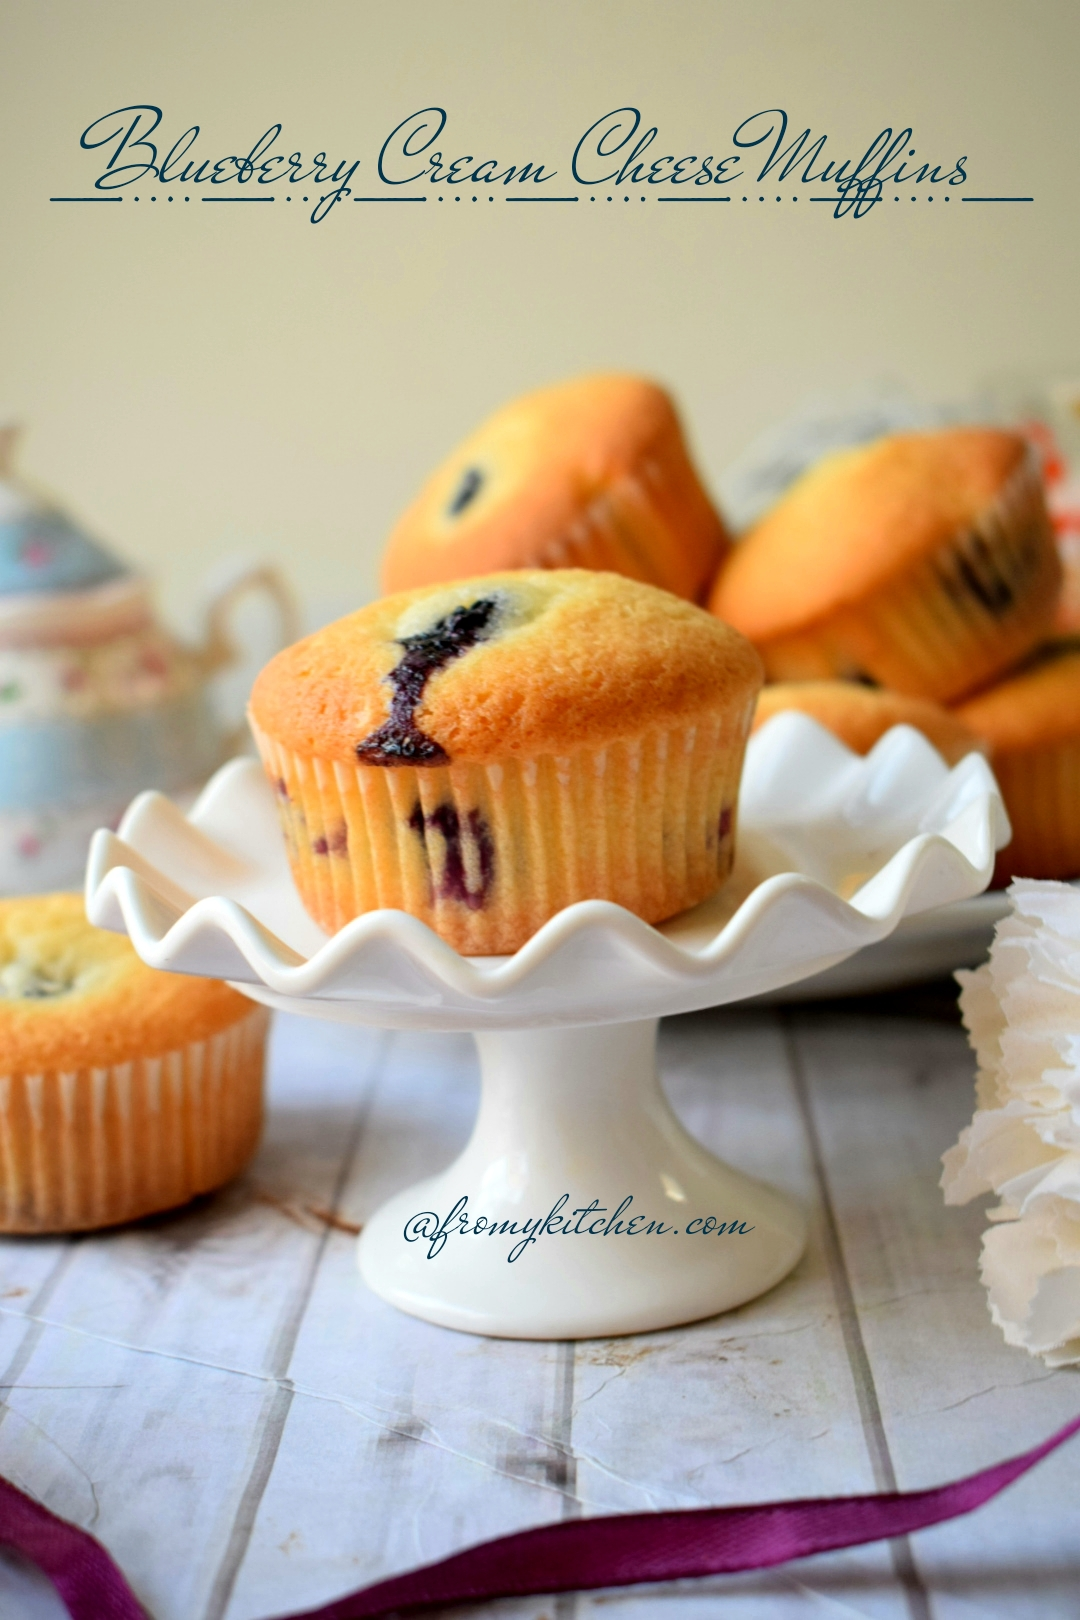 Bluerberry Cream Cheese Muffins